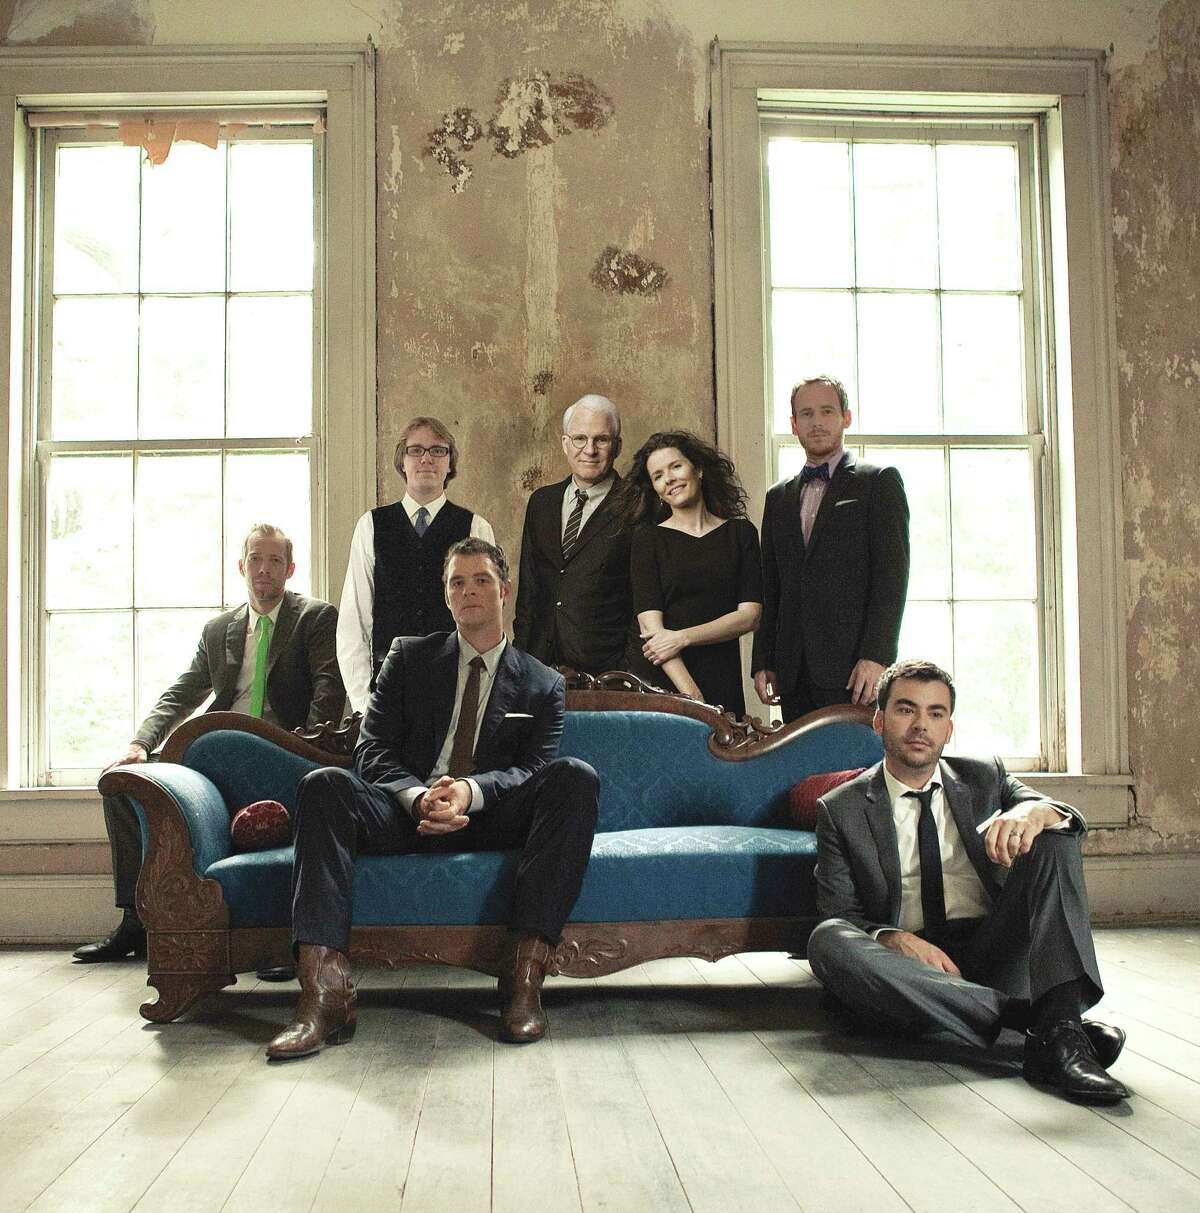 Steve Martin, Edie Brickell and the Steep Canyon Rangers bluegrass band will perform at Jones Hall.